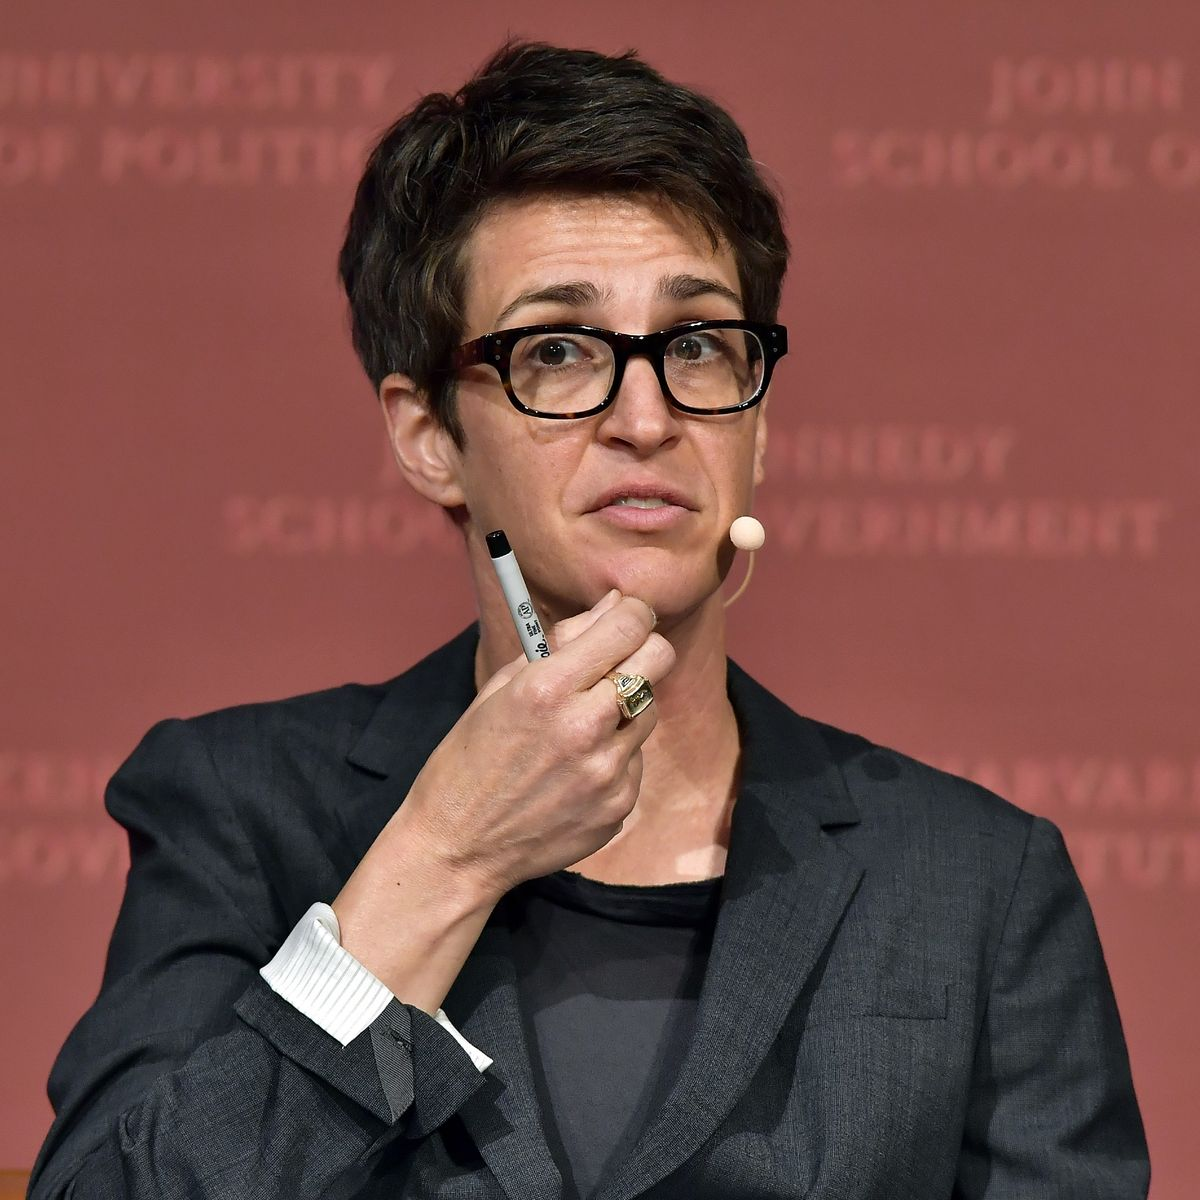 Rachel Maddow Enters Quarantine After Contact COVID Positive